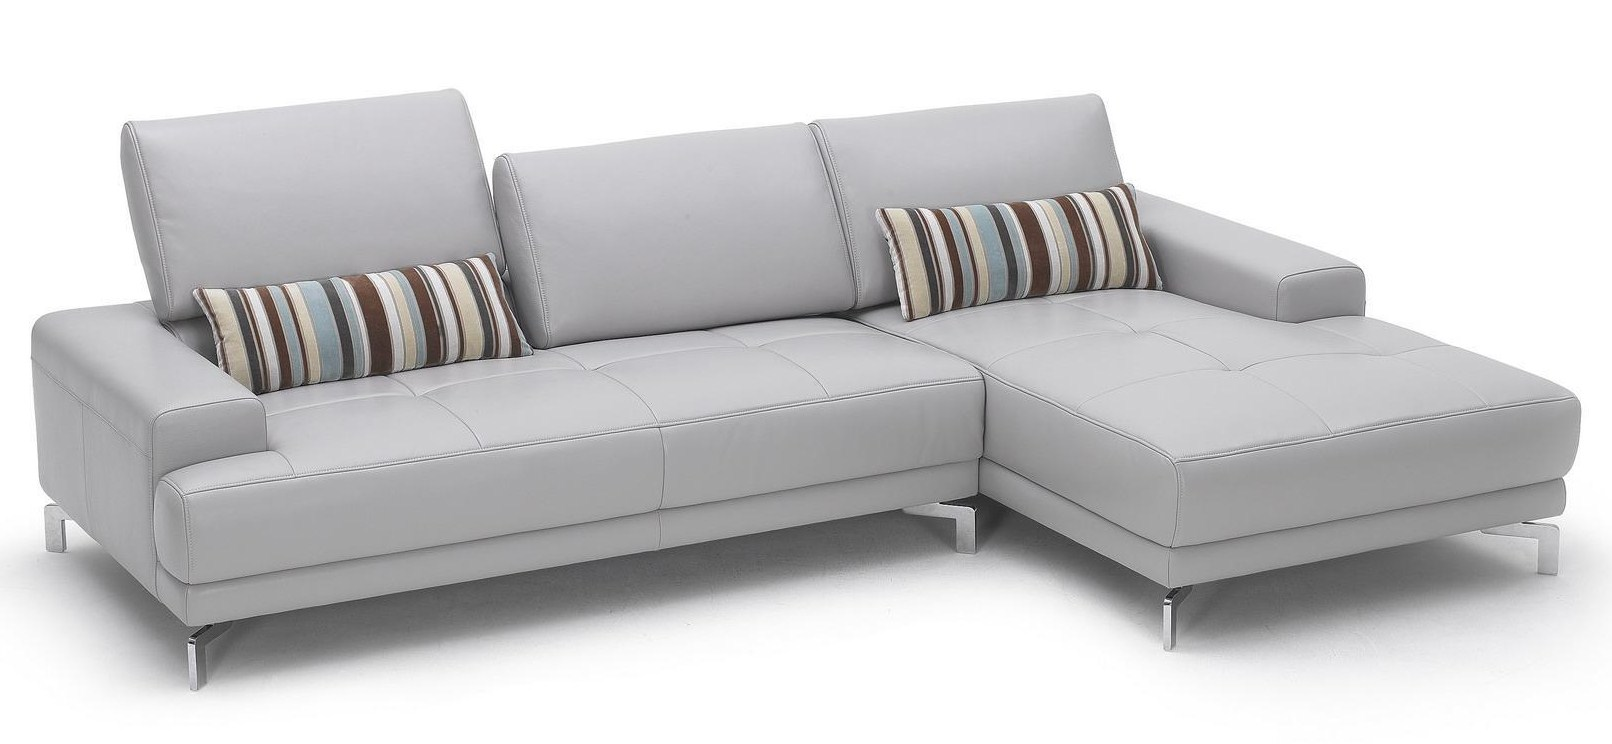 Modern sofa white 1329 1 new york for Contemporary sofa